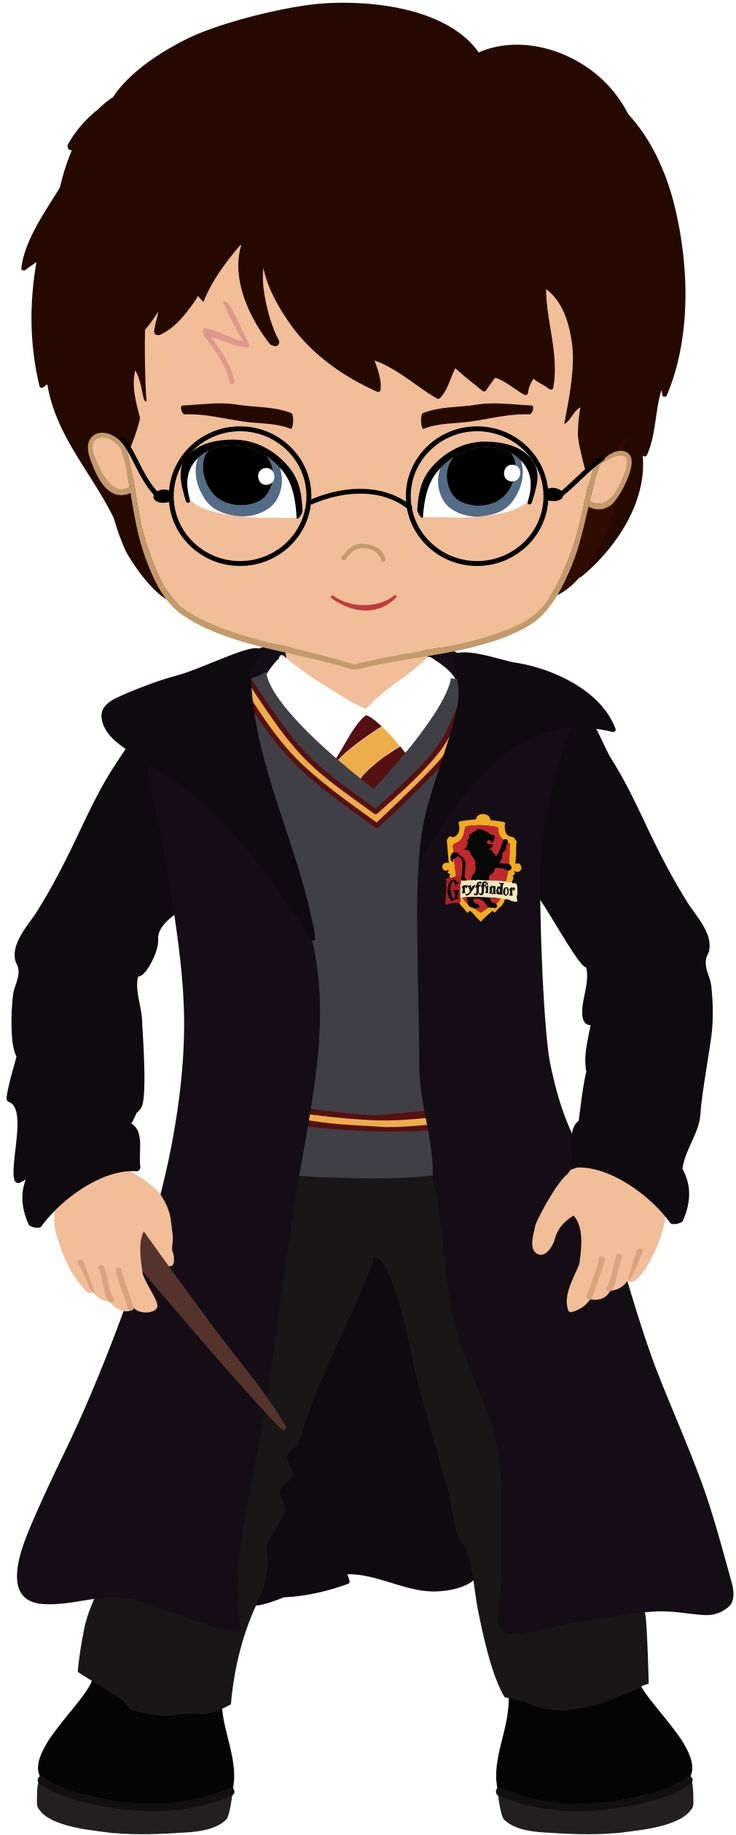 4827 Harry Potter free clipart.